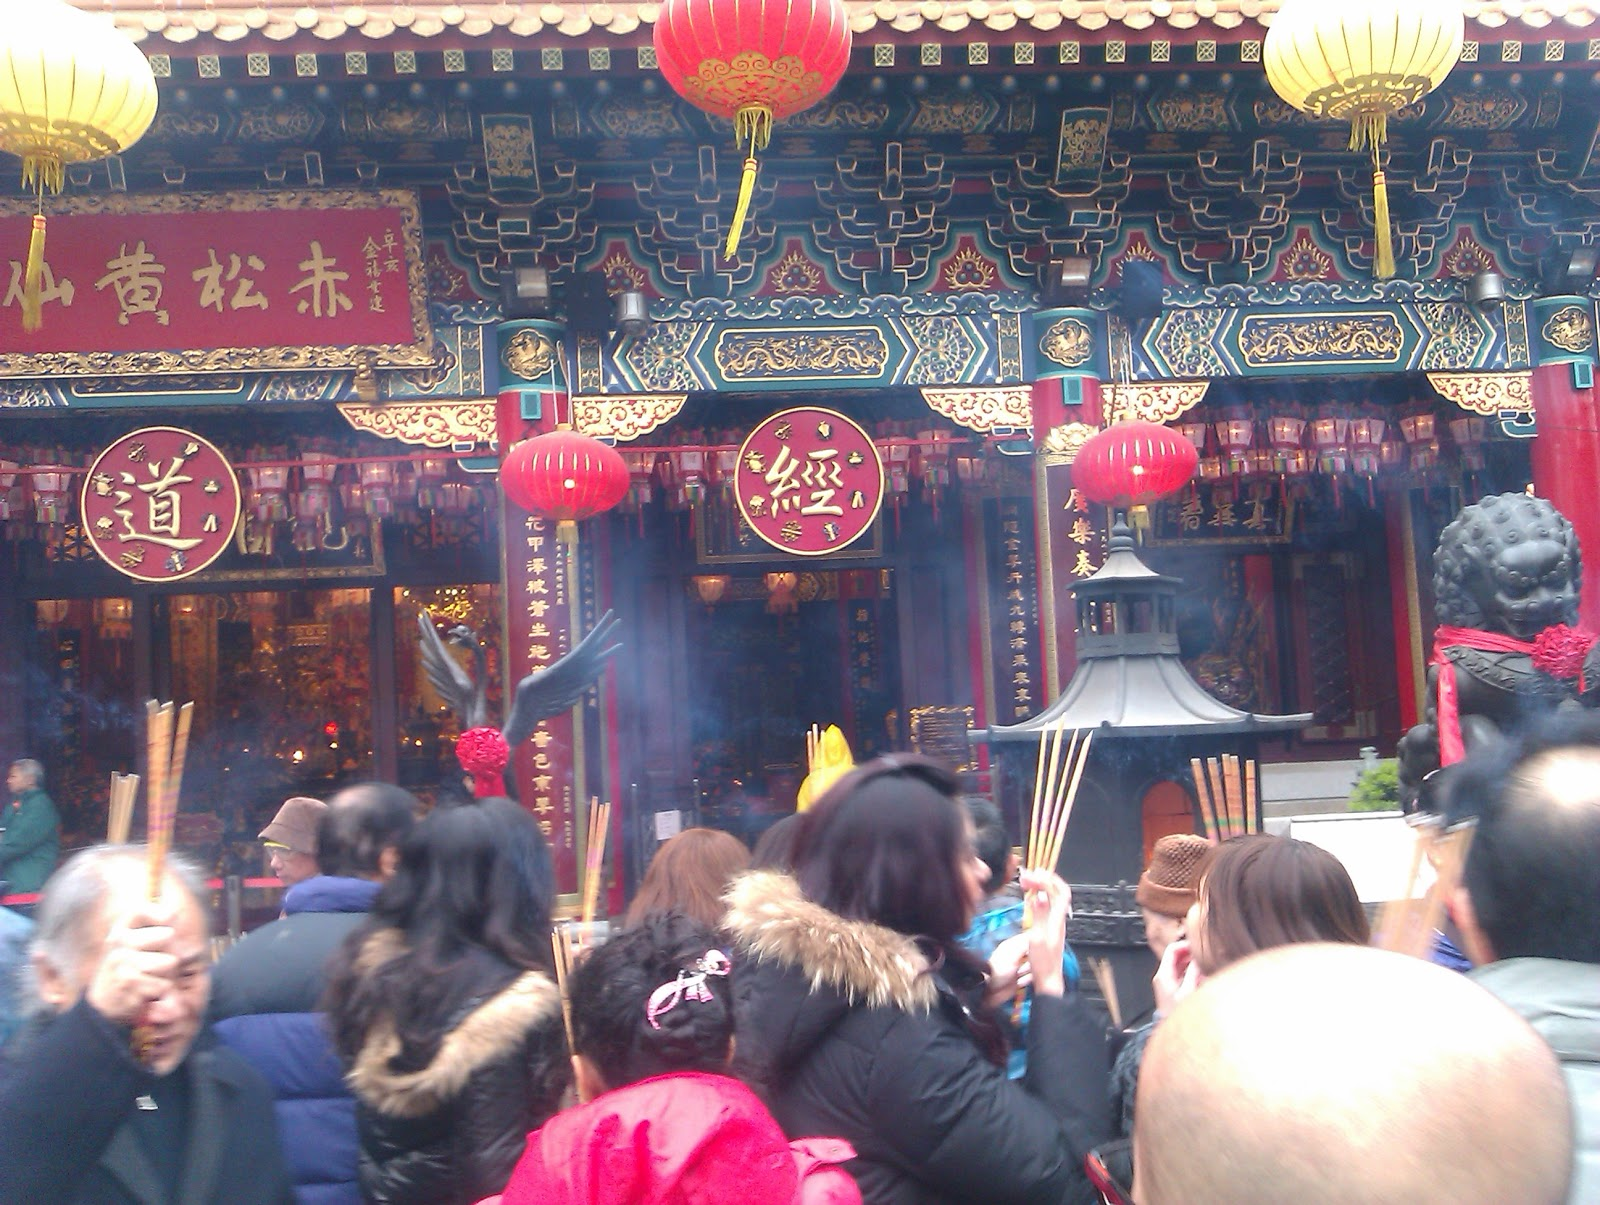 China Marks Lunar New Year With Prayers Incense Fireworks Daily Mail -  it was so crowded you couldn t linger the visit to wong tai sin temple was impressive thousands of people went to pray and welcome the new year